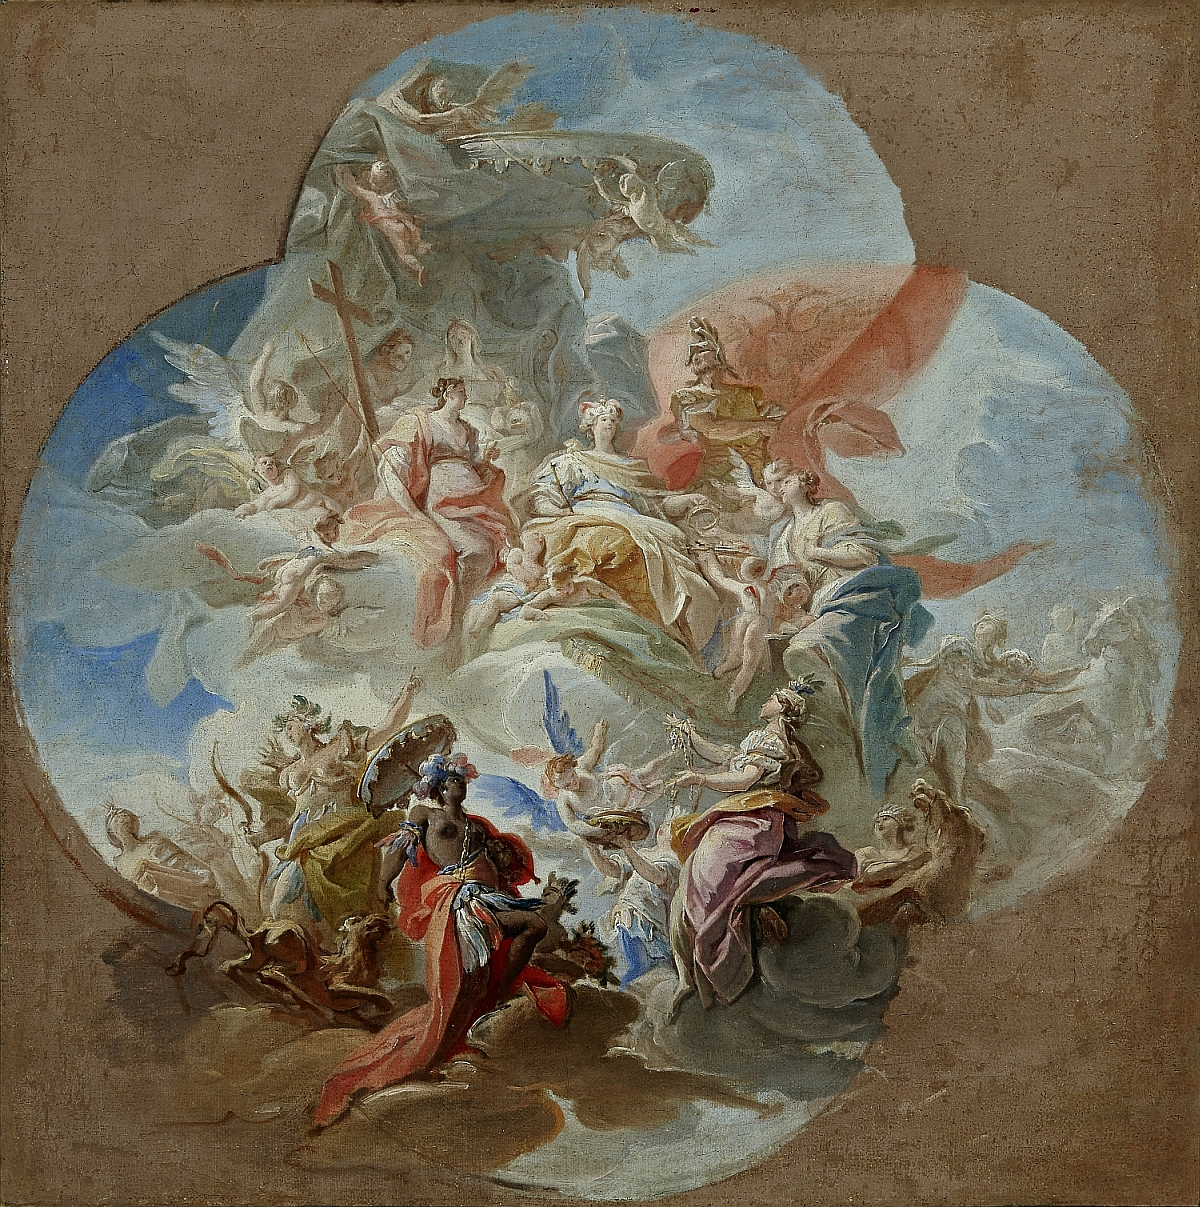 Austria Receives Homage from the Land of Upper Austria, Carlo Innocenzo Carlone, oil on canvas, inv. no. RO 0374; modello for a ceiling fresco (1717) in the Linz Landhaus (destroyed)